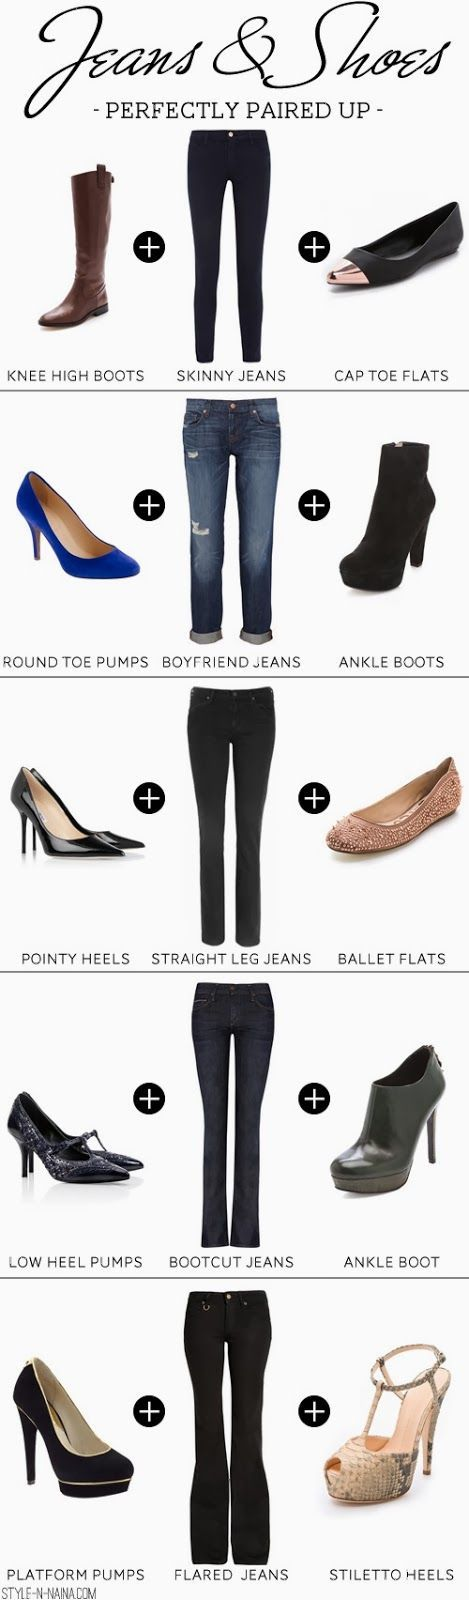 15 Style Tips On How To Wear Your Shoes To Instantly Update Your Wardrobe